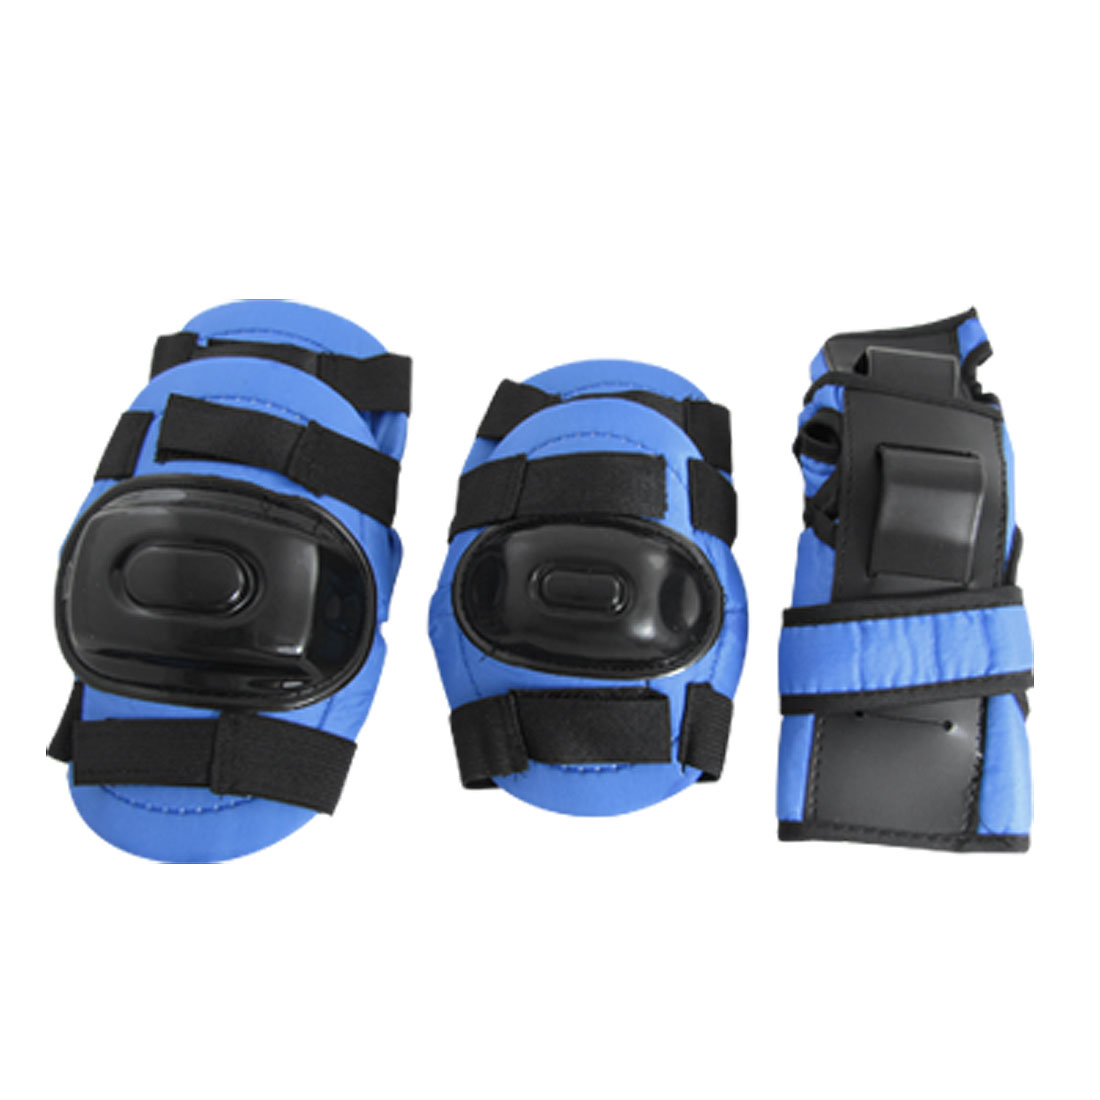 Blue & Black Elbow Knee Wrist Support Sports Protector Set